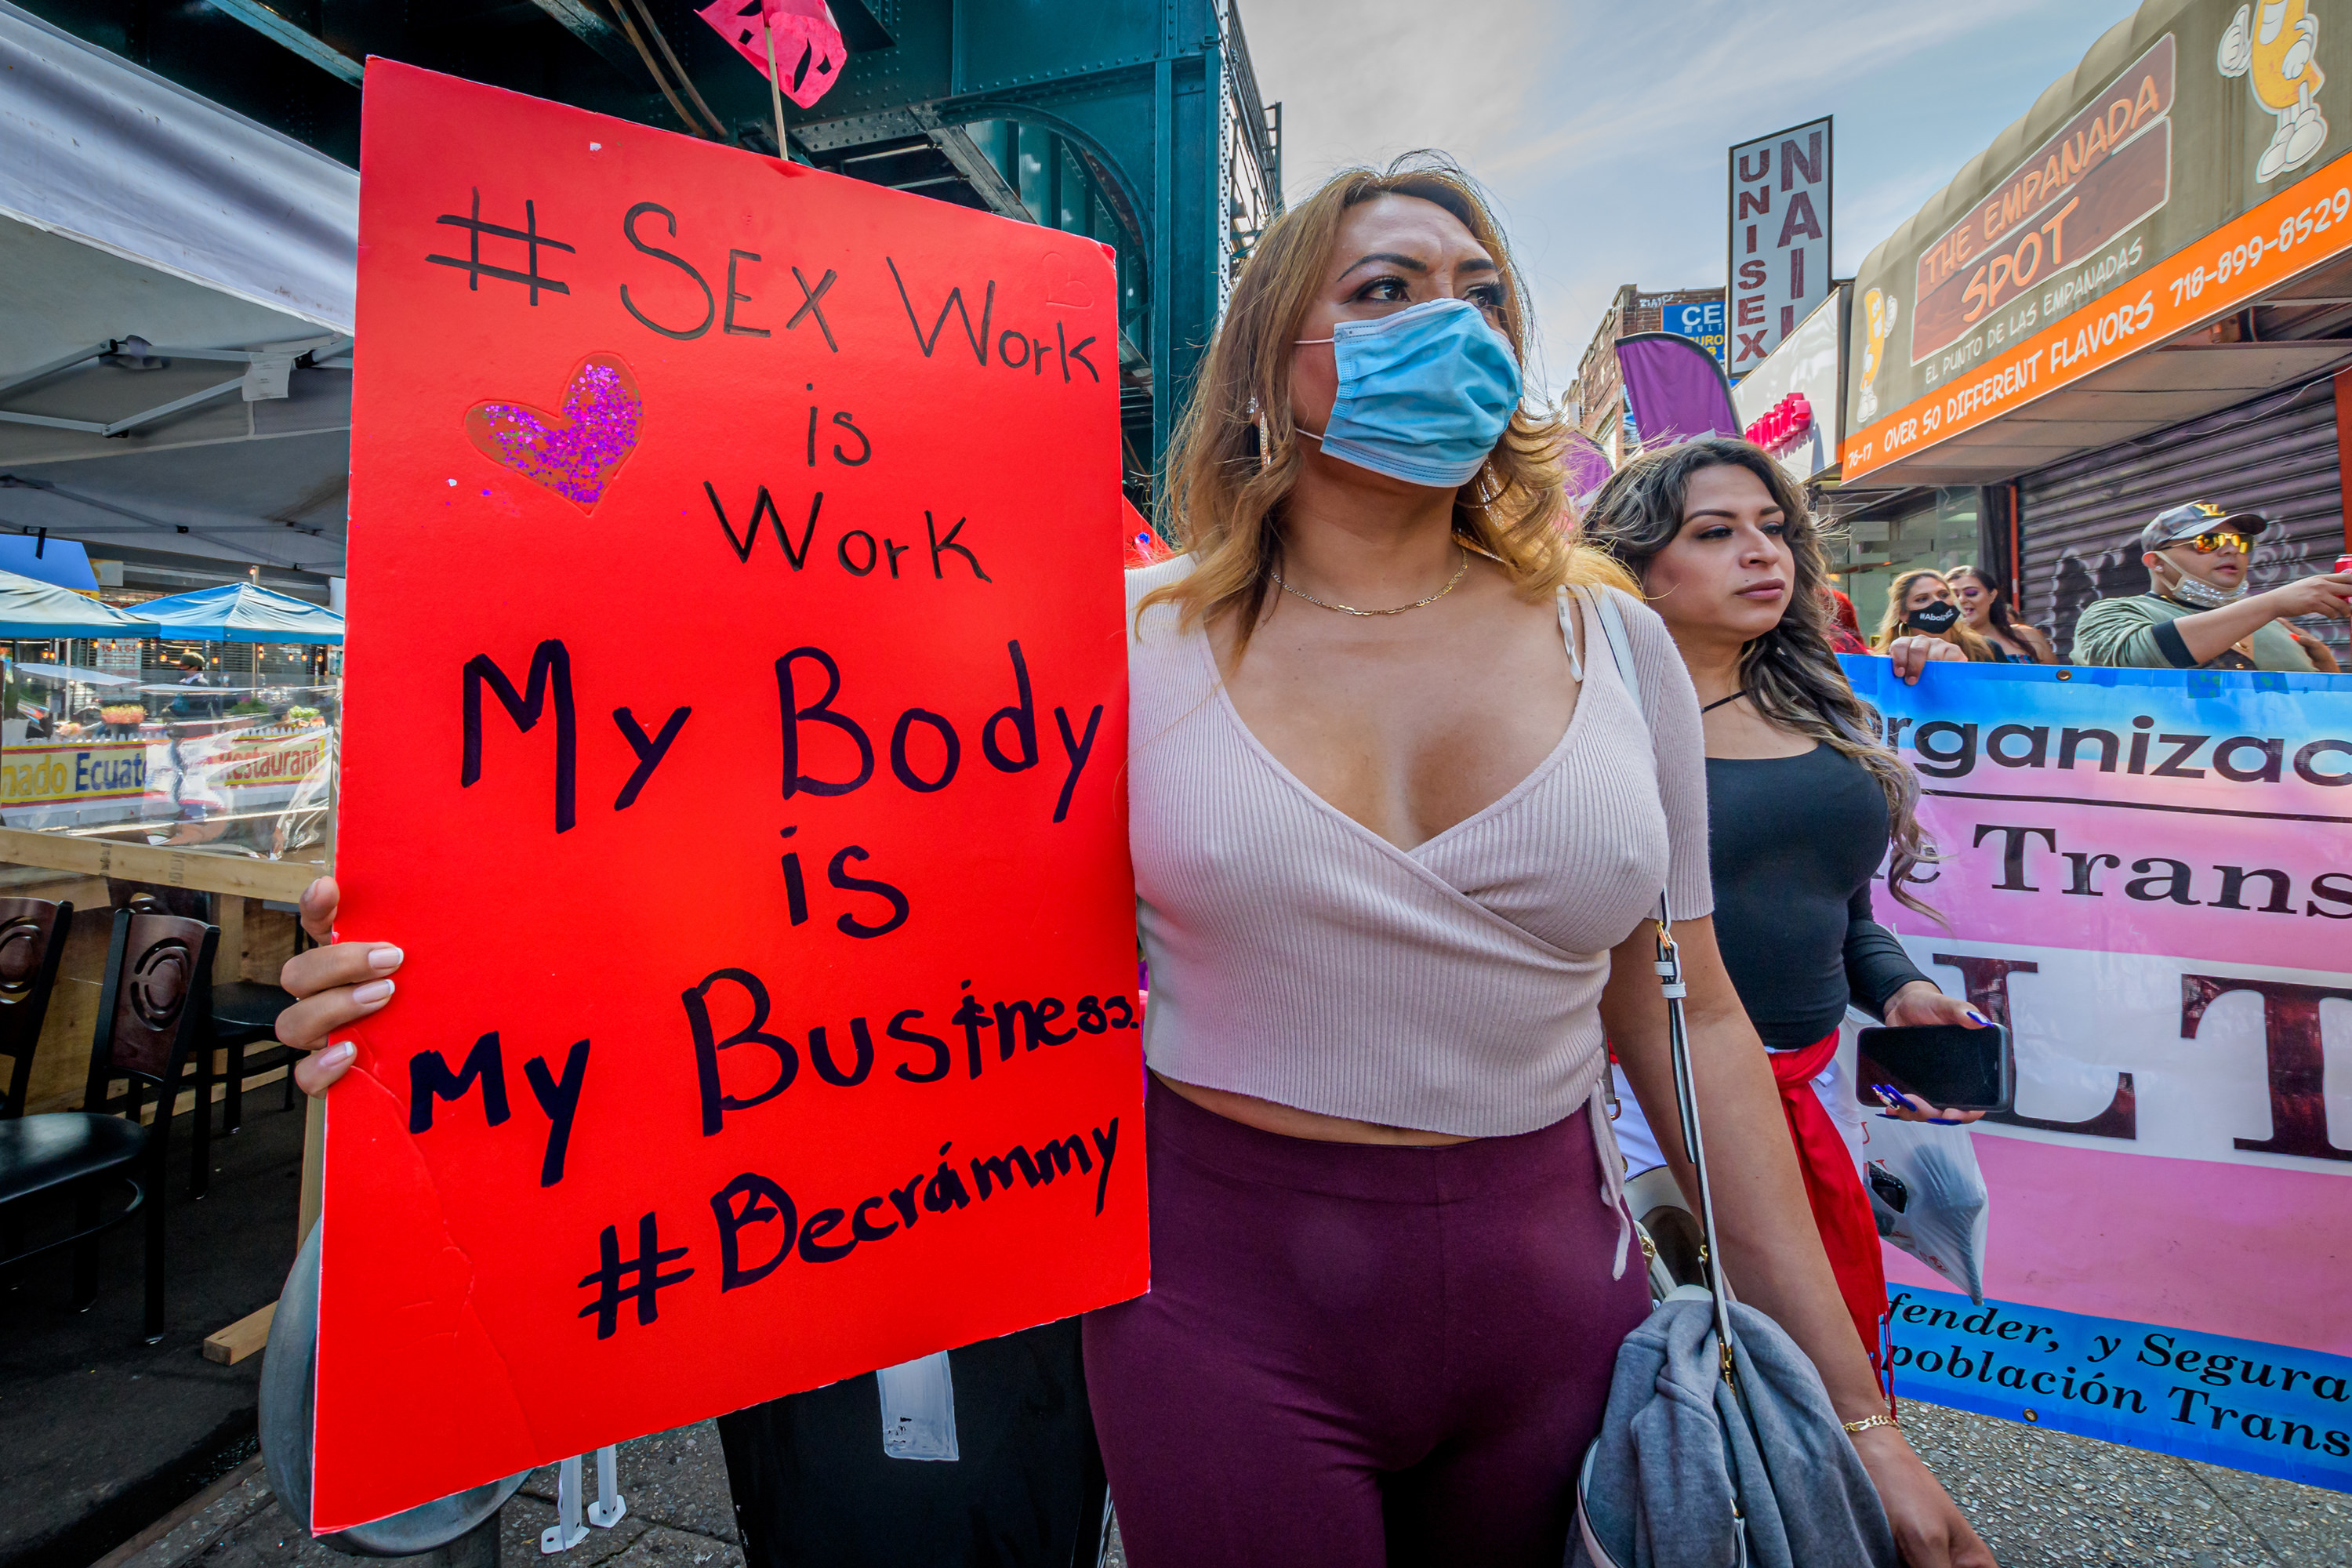 An image of a march for sex worker rights